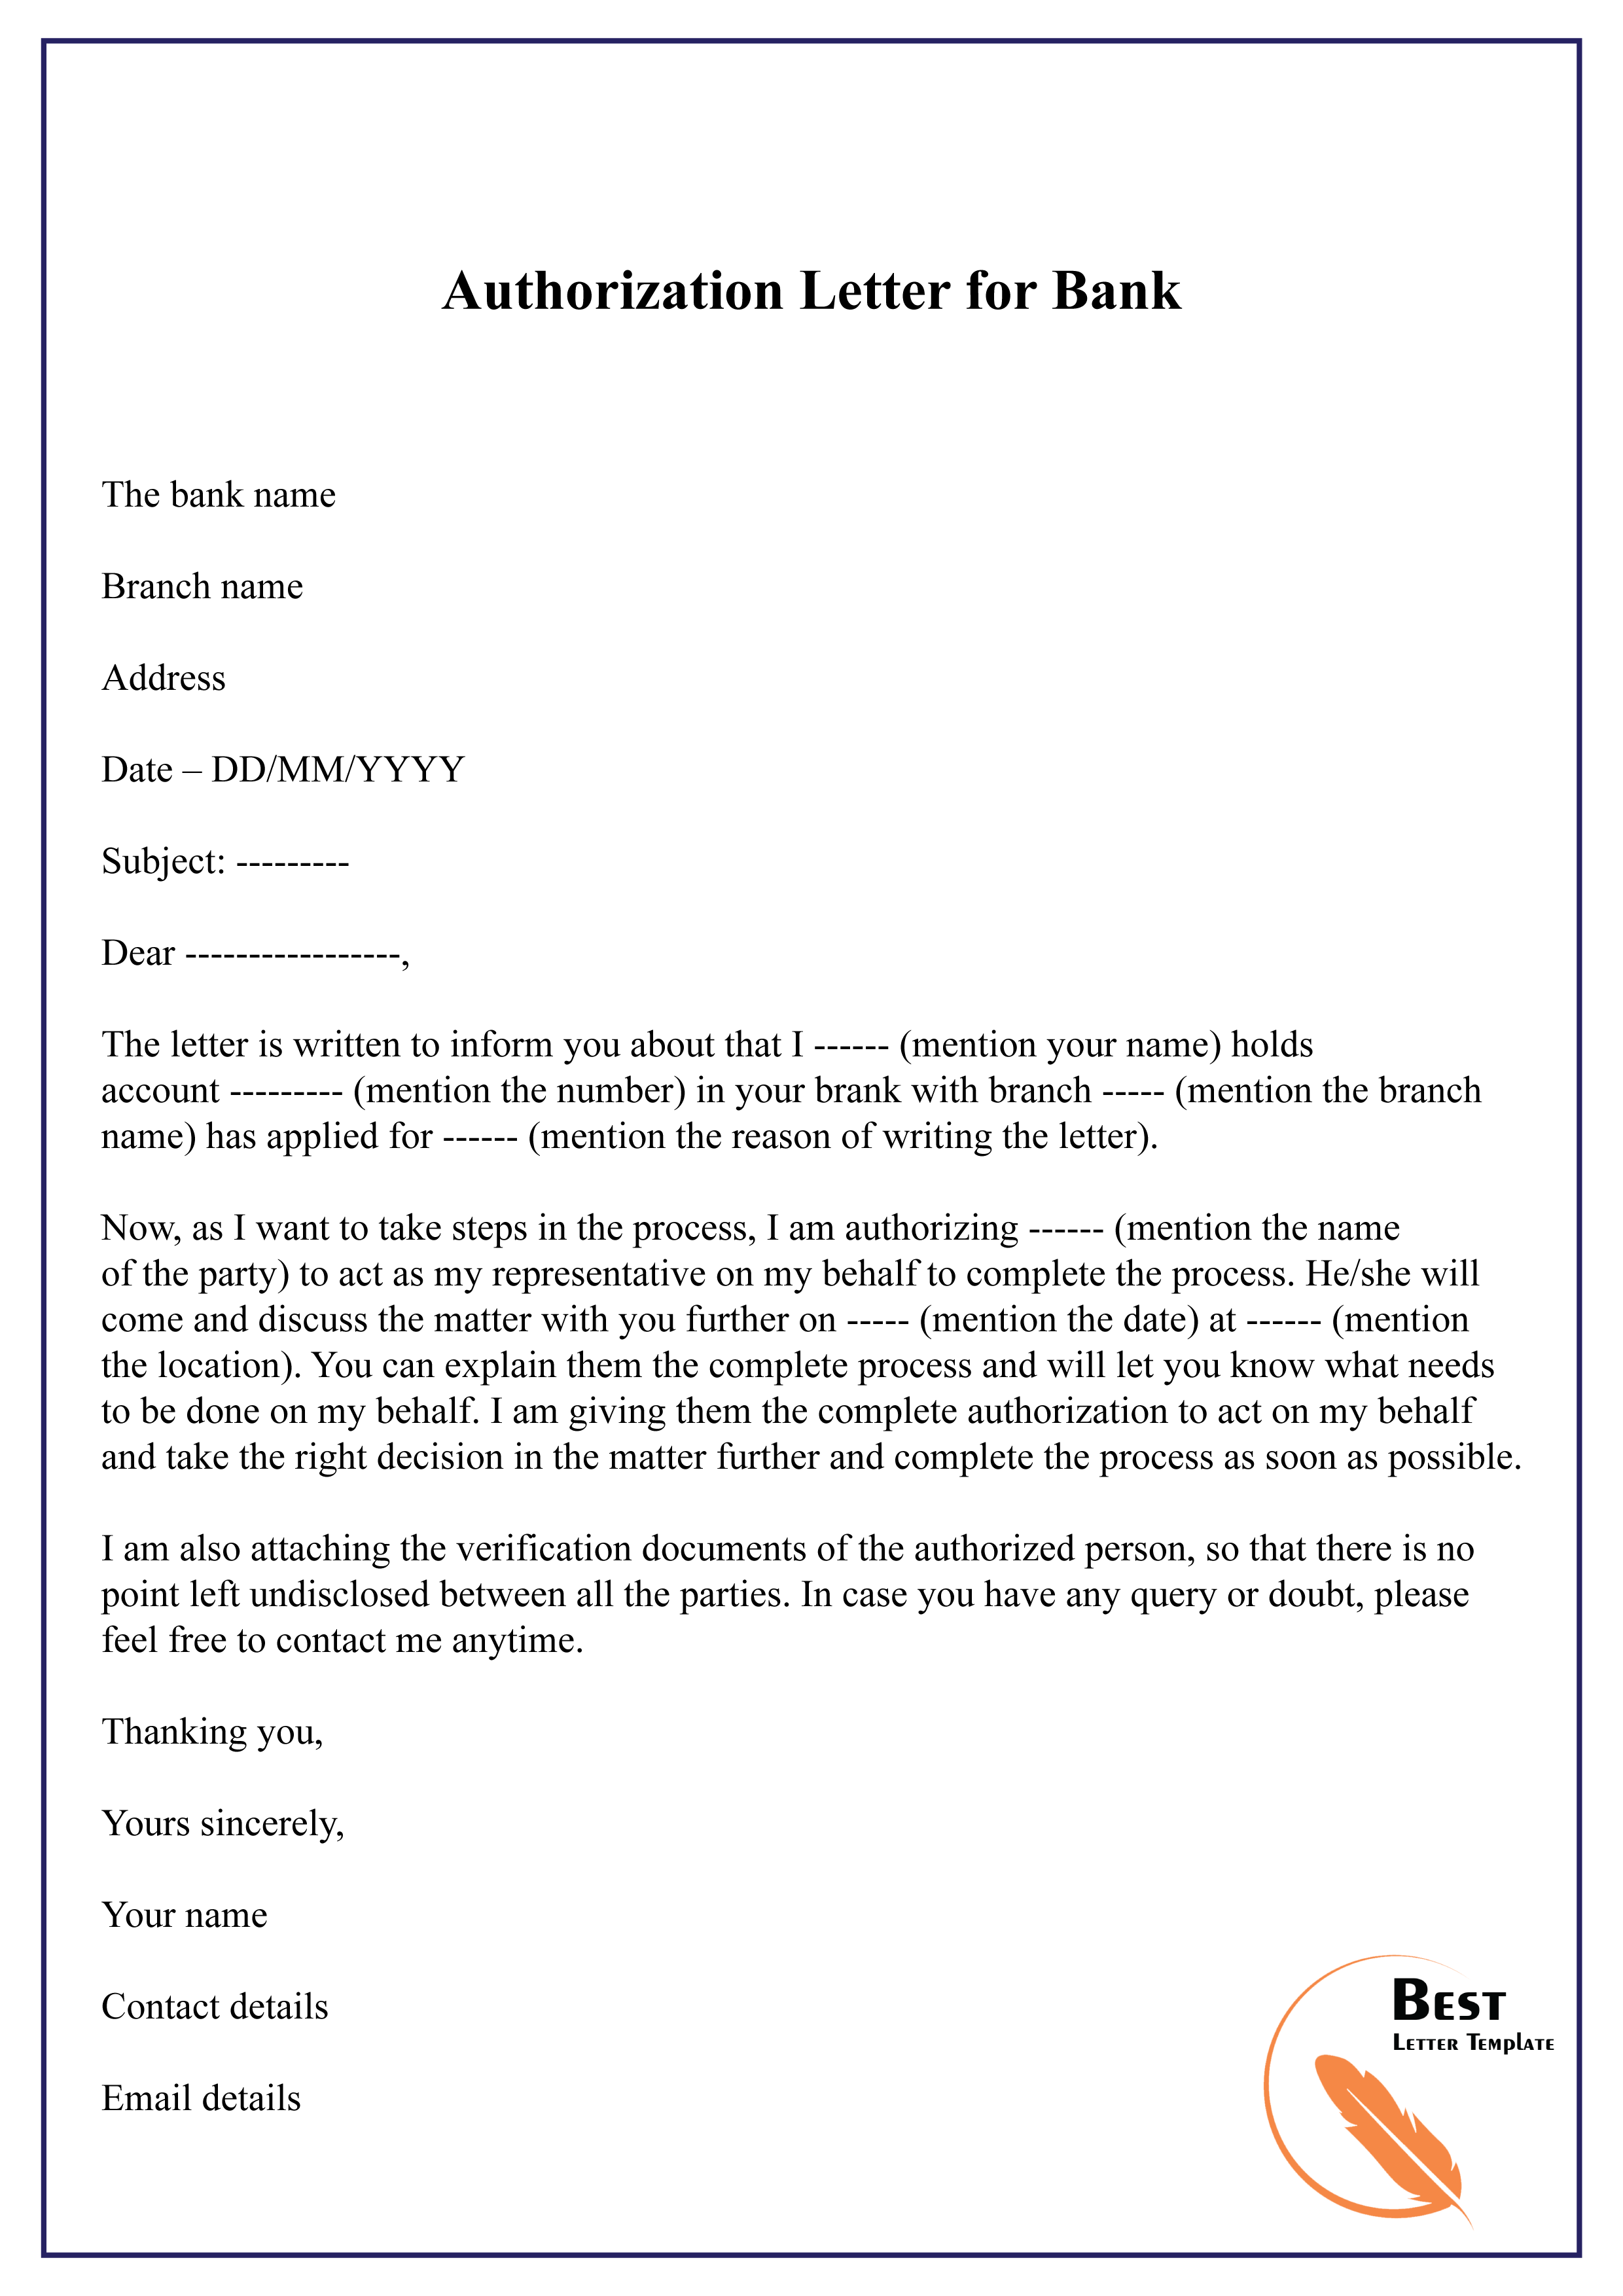 Authorization letter for bank-01 | Best Letter Template